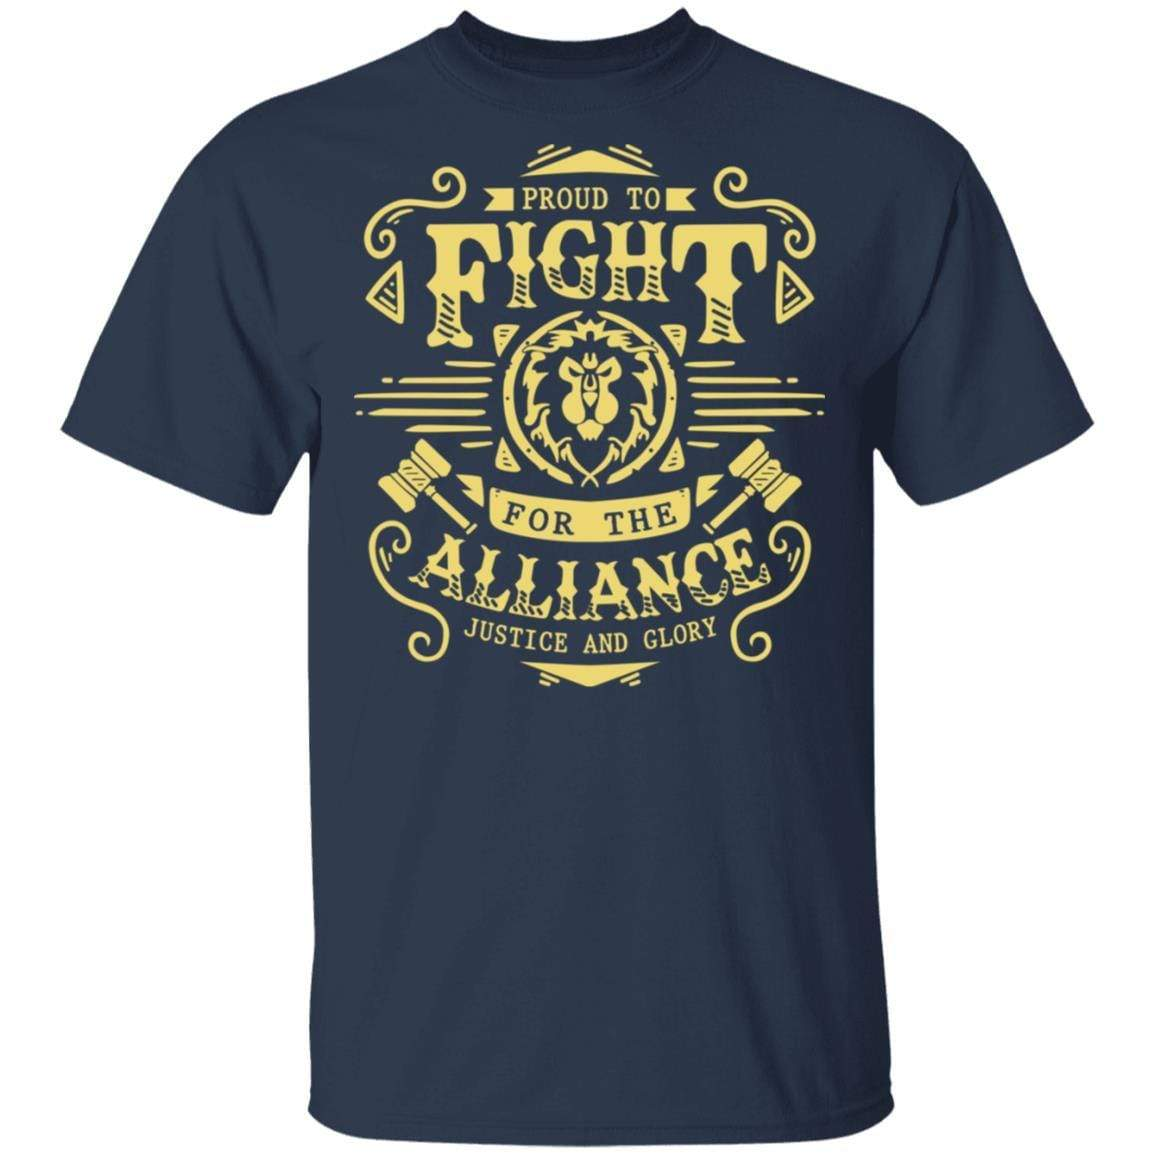 Proud To Fight For The Alliance Justice And Glory T-Shirts, Hoodies 1049-9966-88445022-48248 - Tee Ript